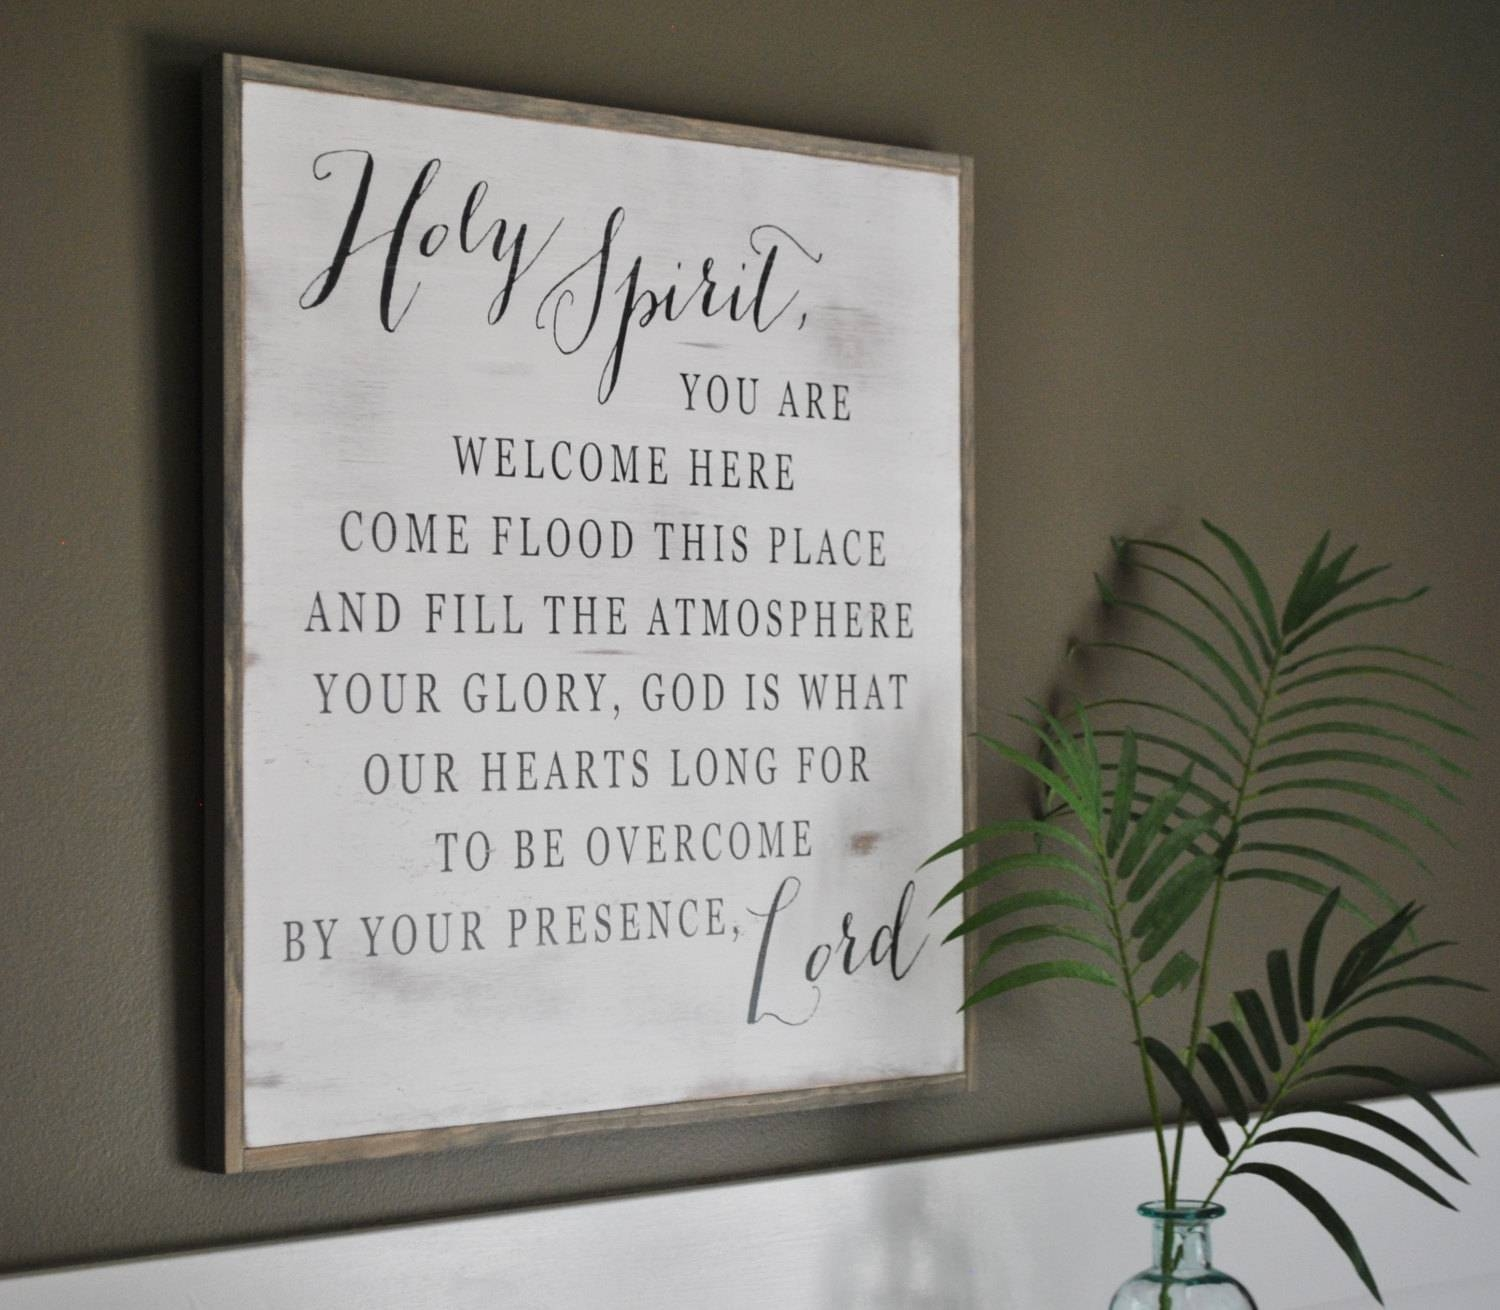 Holy Spirit 2'x2' || Inspirational Wall Art || Distressed Shabby For Best And Newest Inspirational Wall Plaques (View 5 of 20)